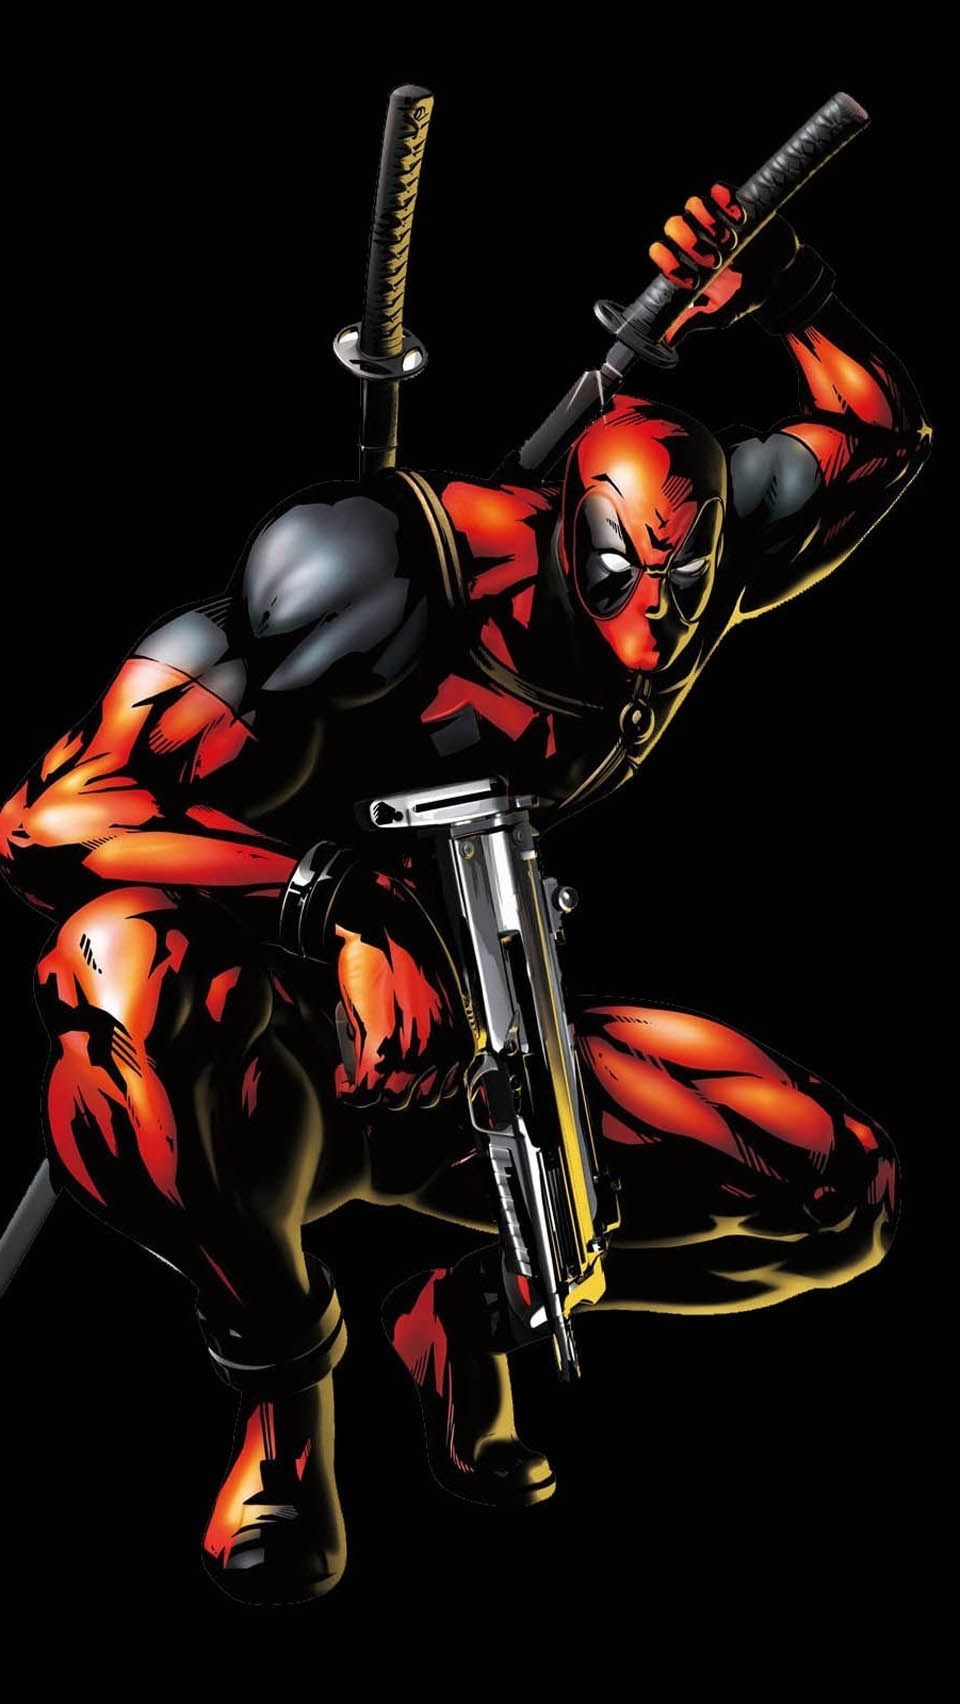 deadpool on pinterest - photo #42